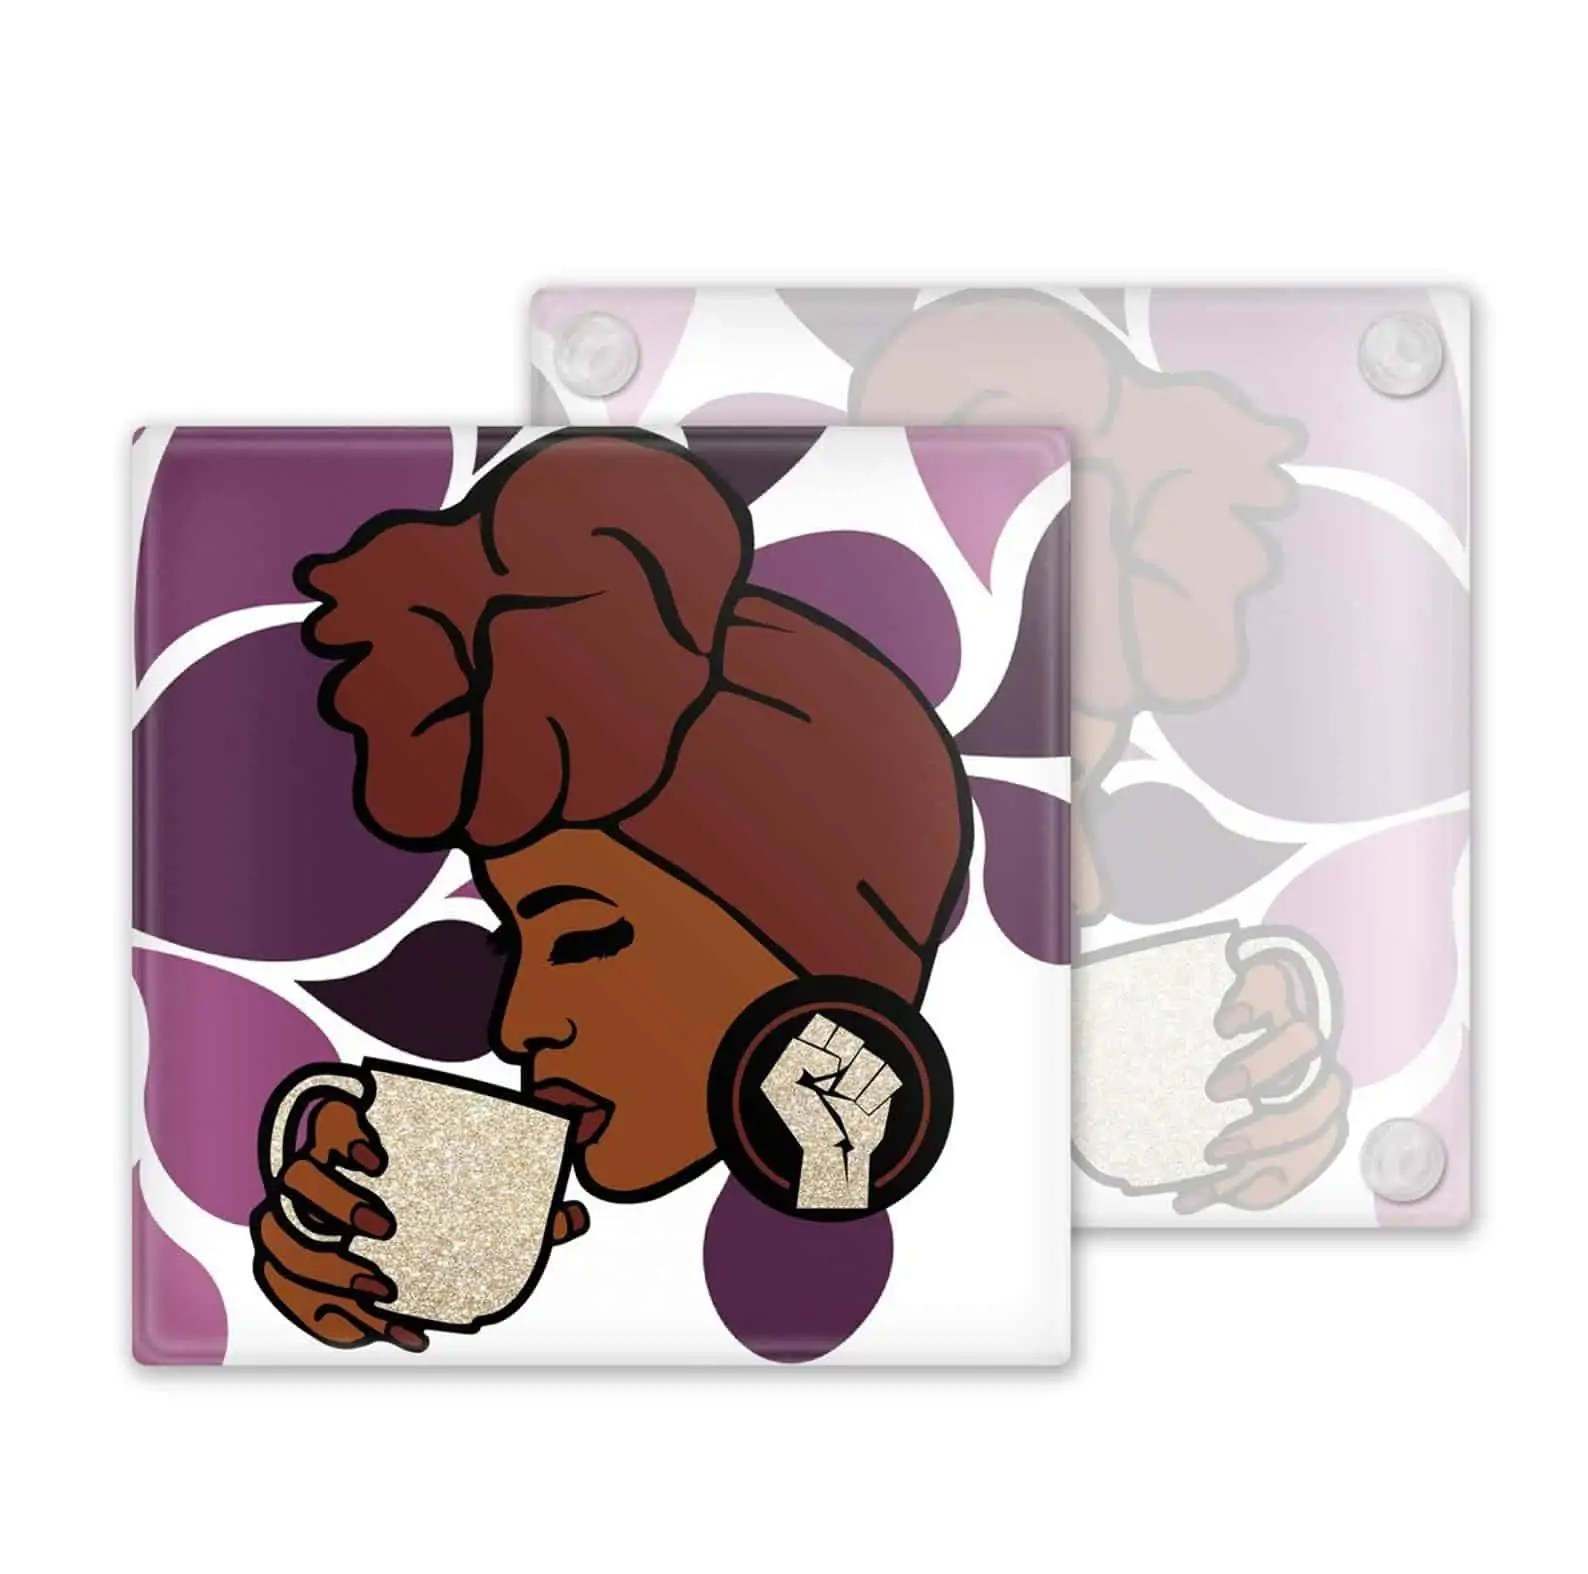 M&K Creative Designs Black Owned Canadian Etsy Shop | Afrocentric Products Black Woman Wearing Headwrap Coasters